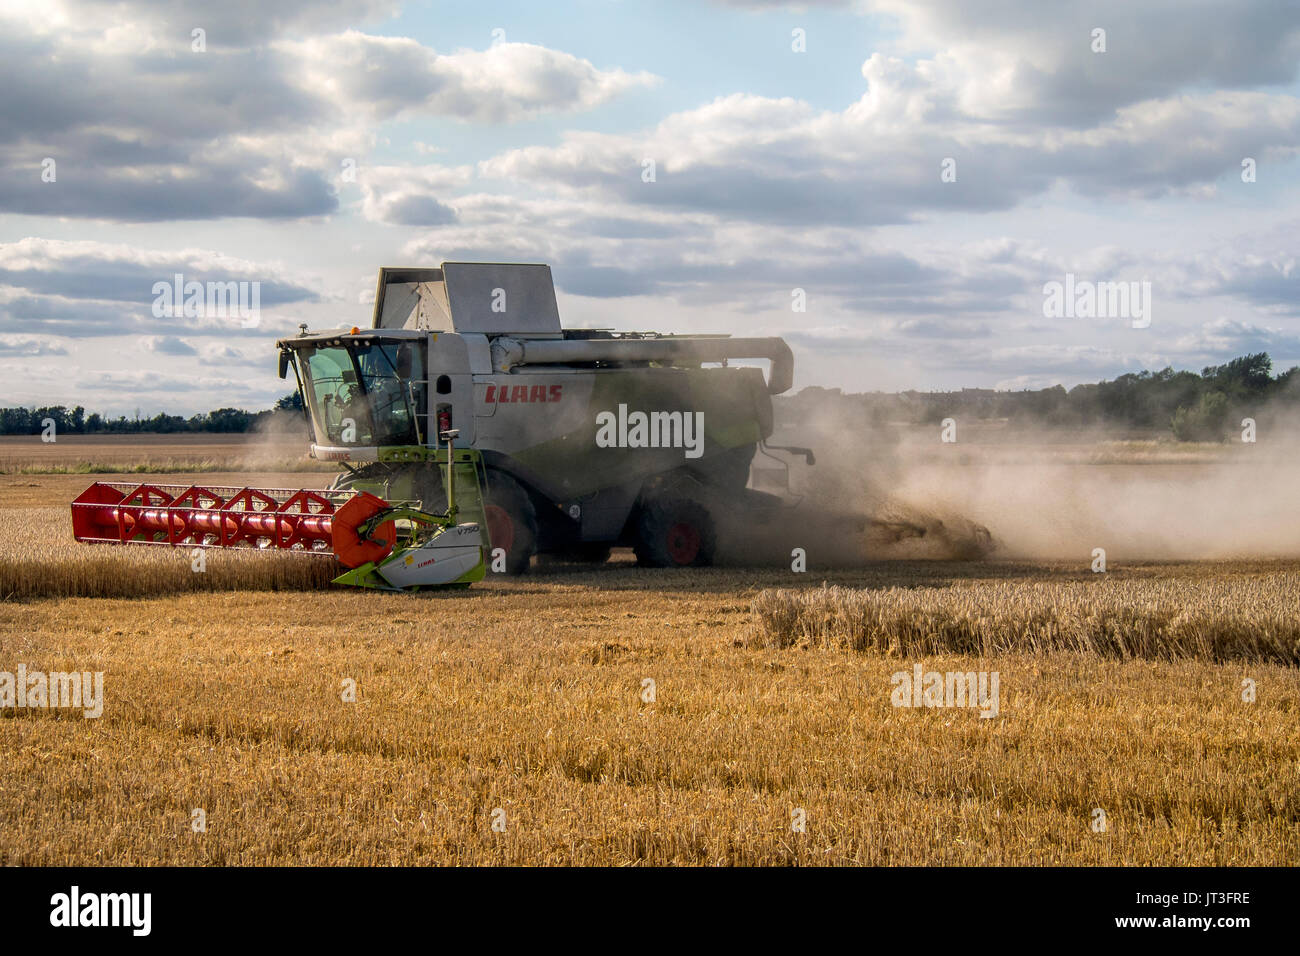 Claas Combine harvesting wheat in rural Essex field working with cloud of dust behind it - Stock Image